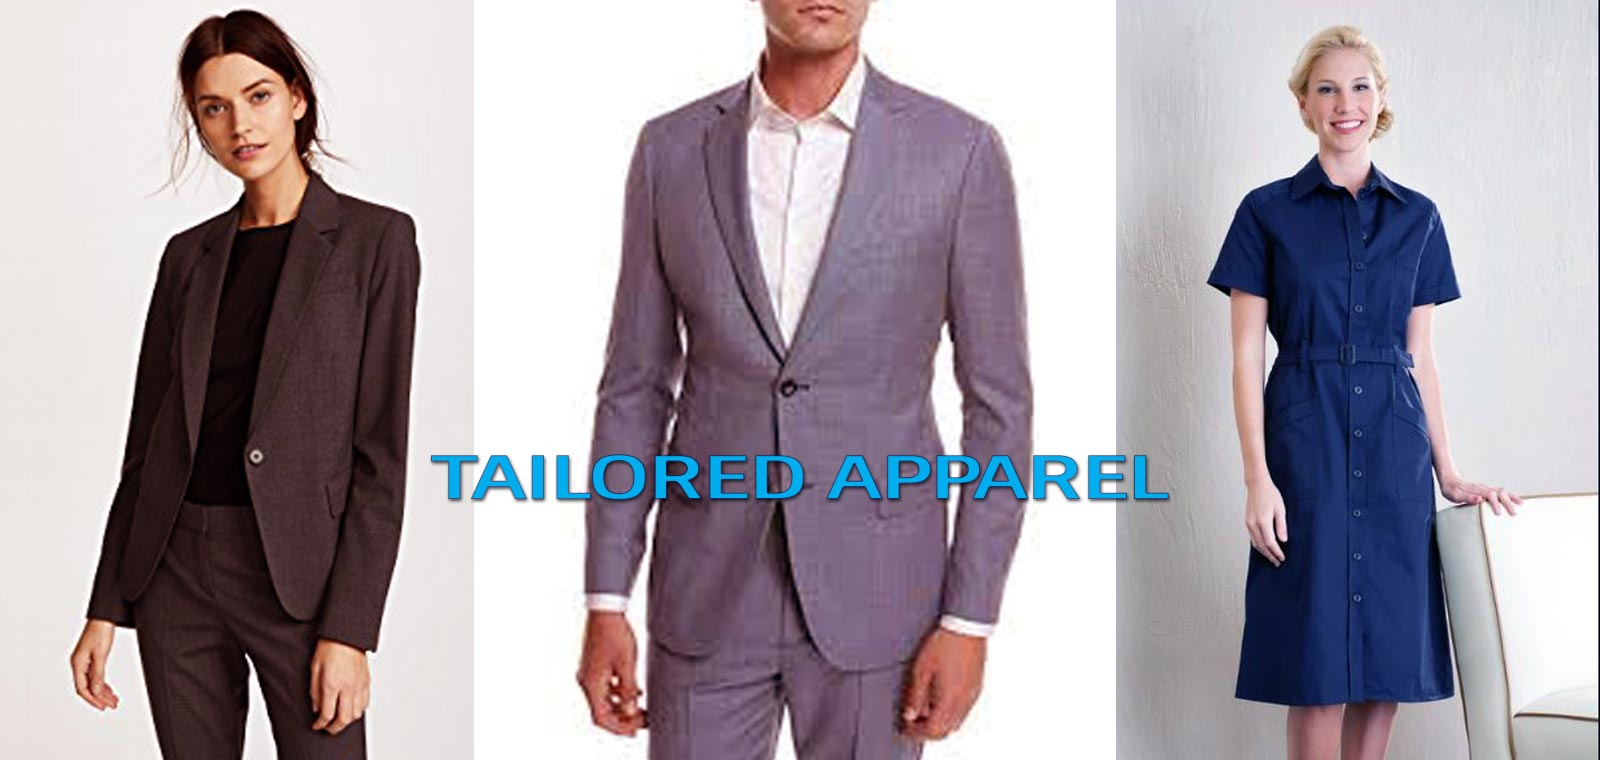 DK - TAILORED APPAREL